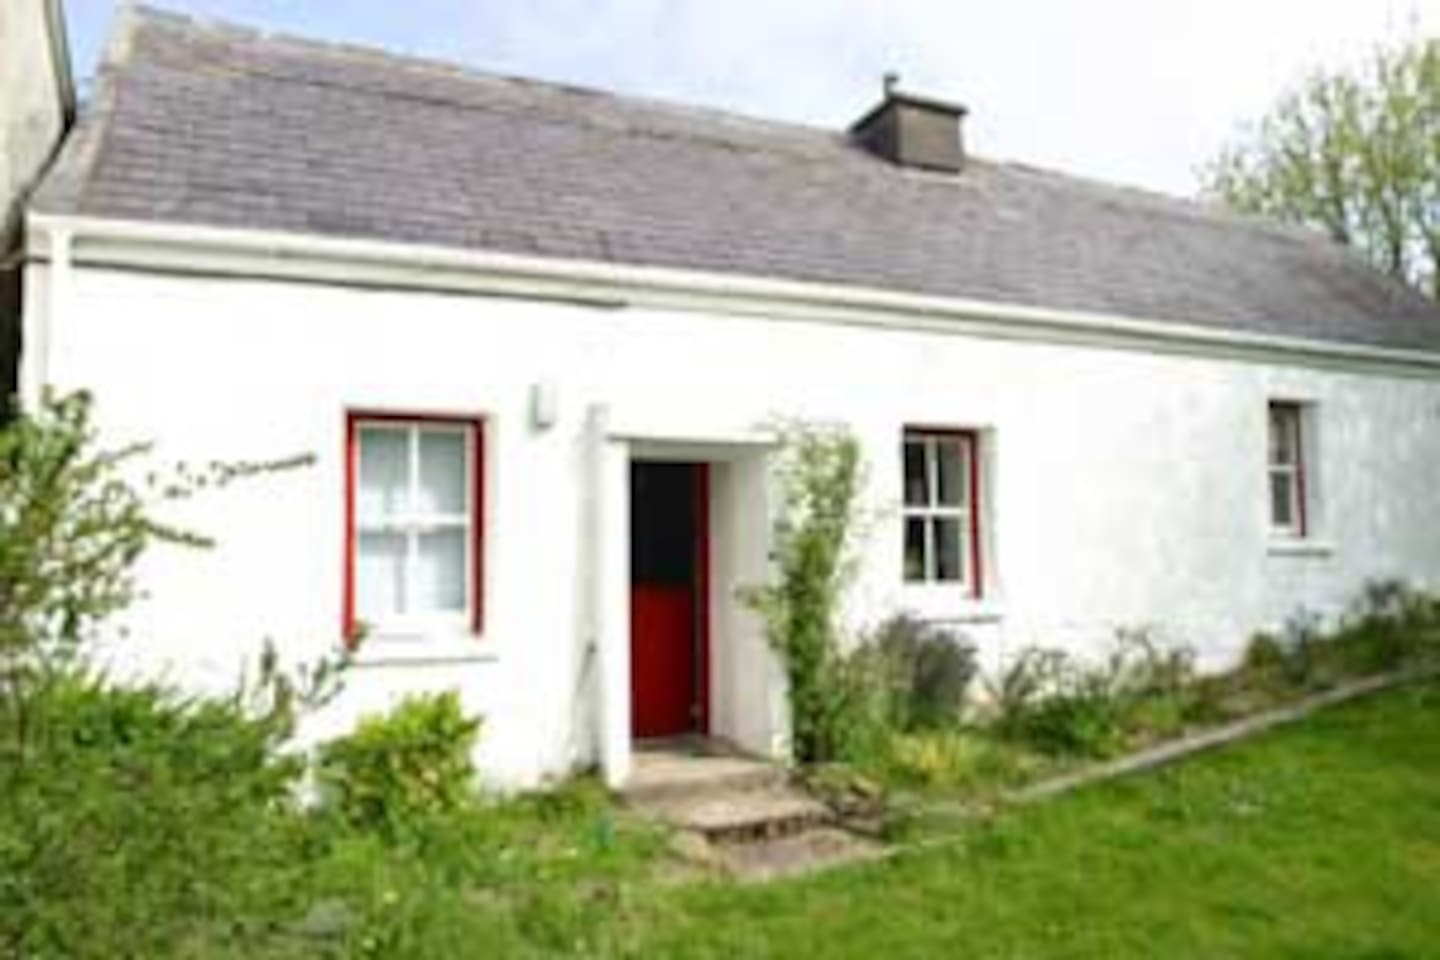 200 year old traditional Irish cottage, as authentic as it comes - plus central heating!